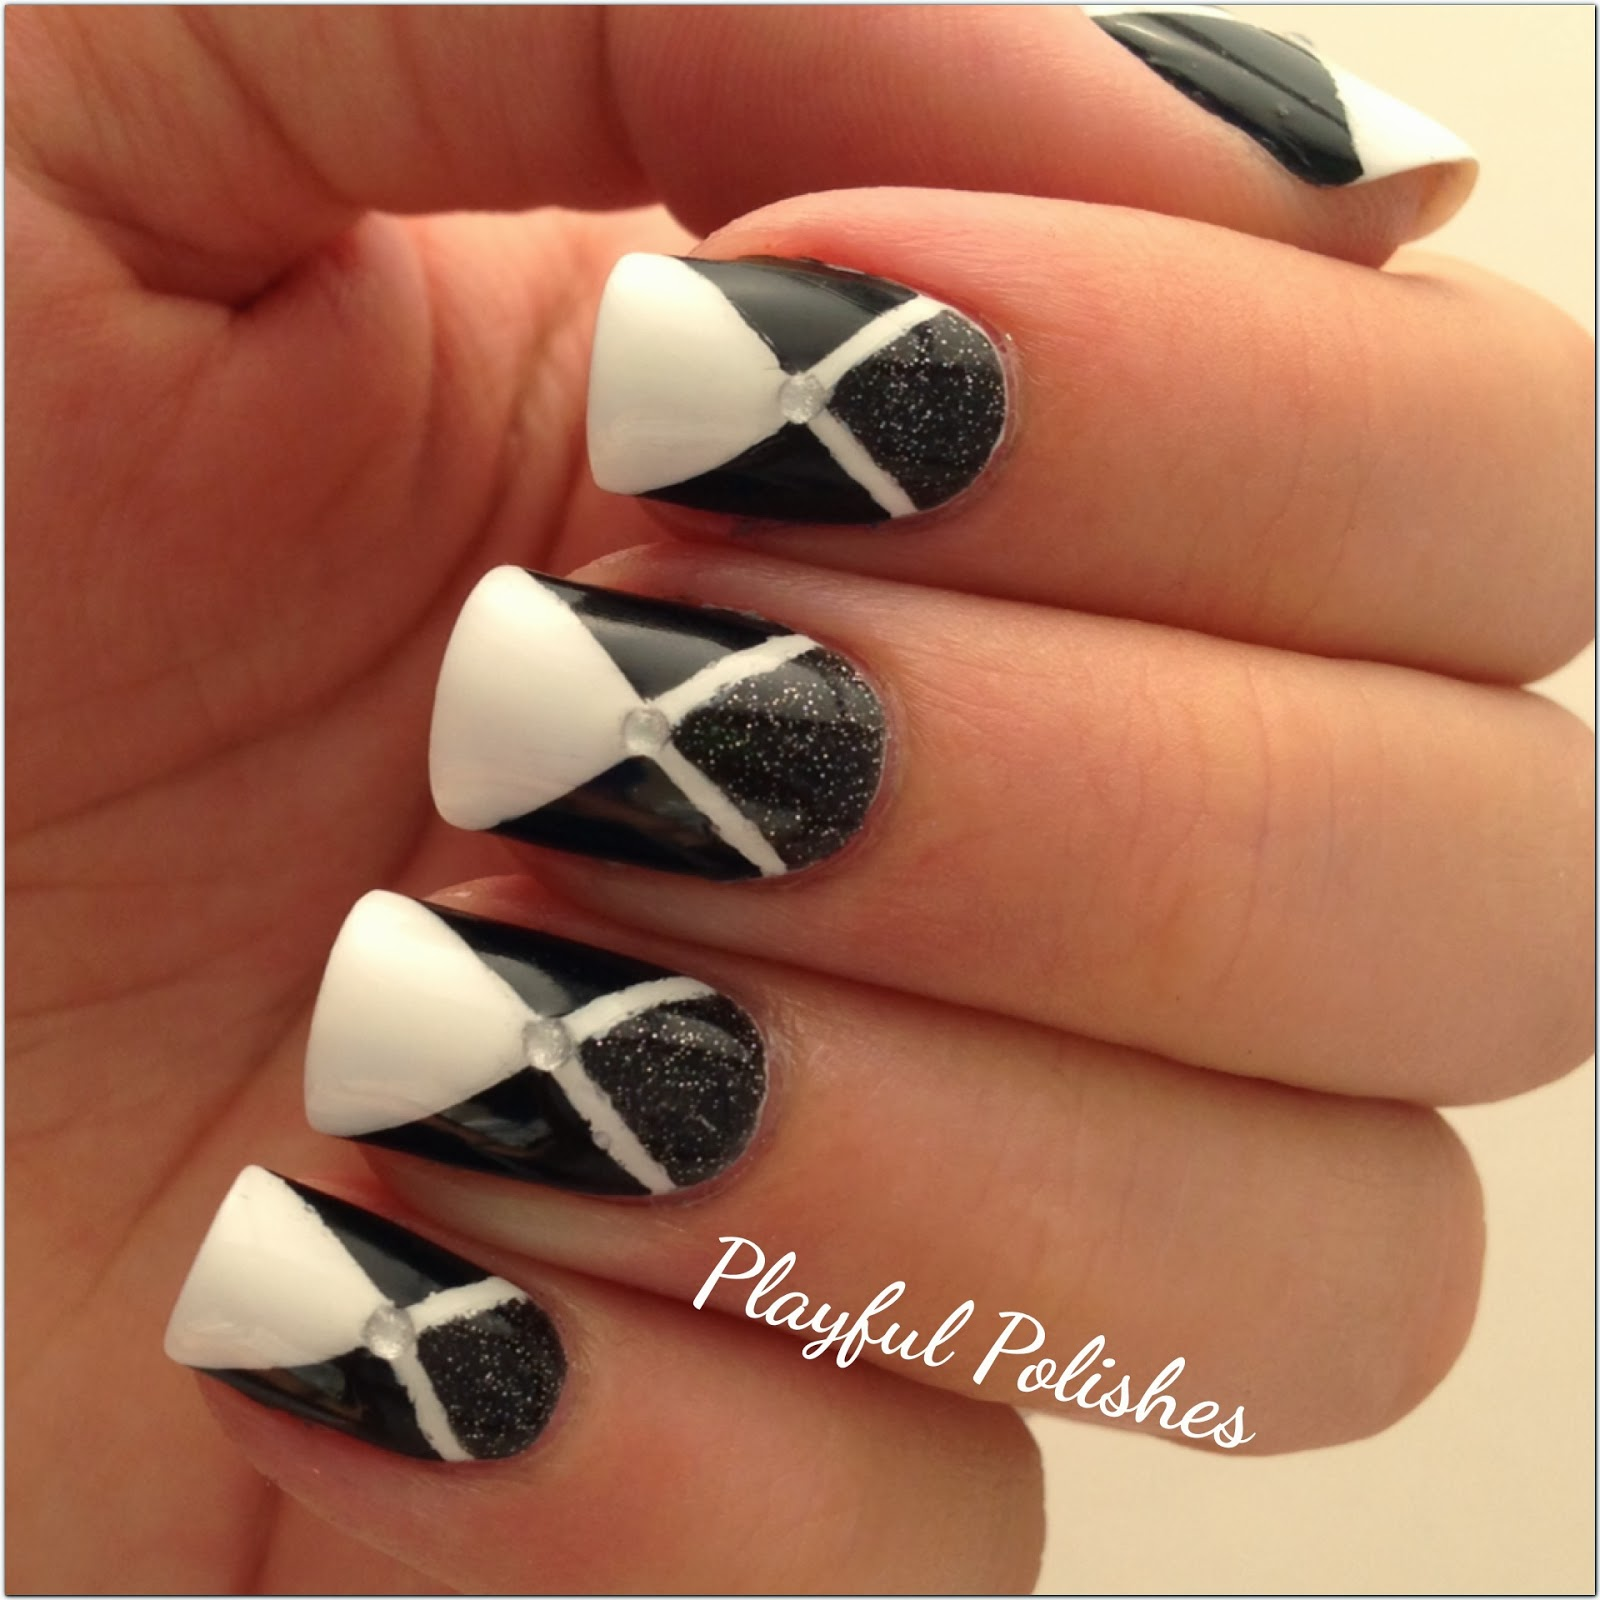 Nail designs moreover pinterest nail art ideas free image nail art